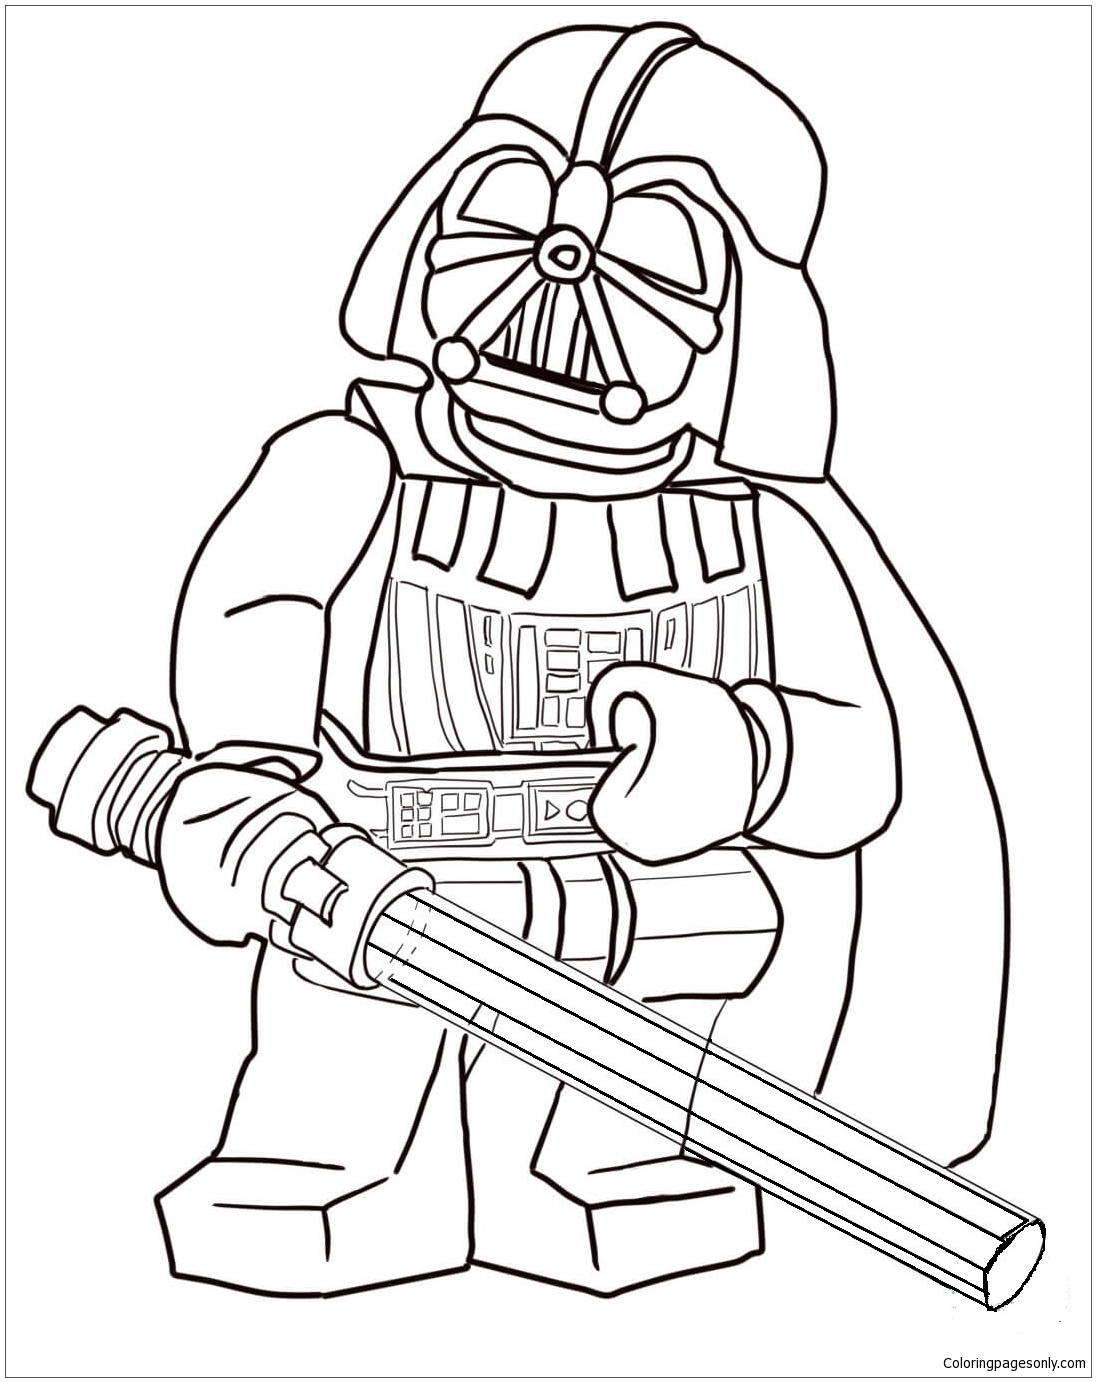 - Lego Star Wars Darth Vader Coloring Page - Free Coloring Pages Online